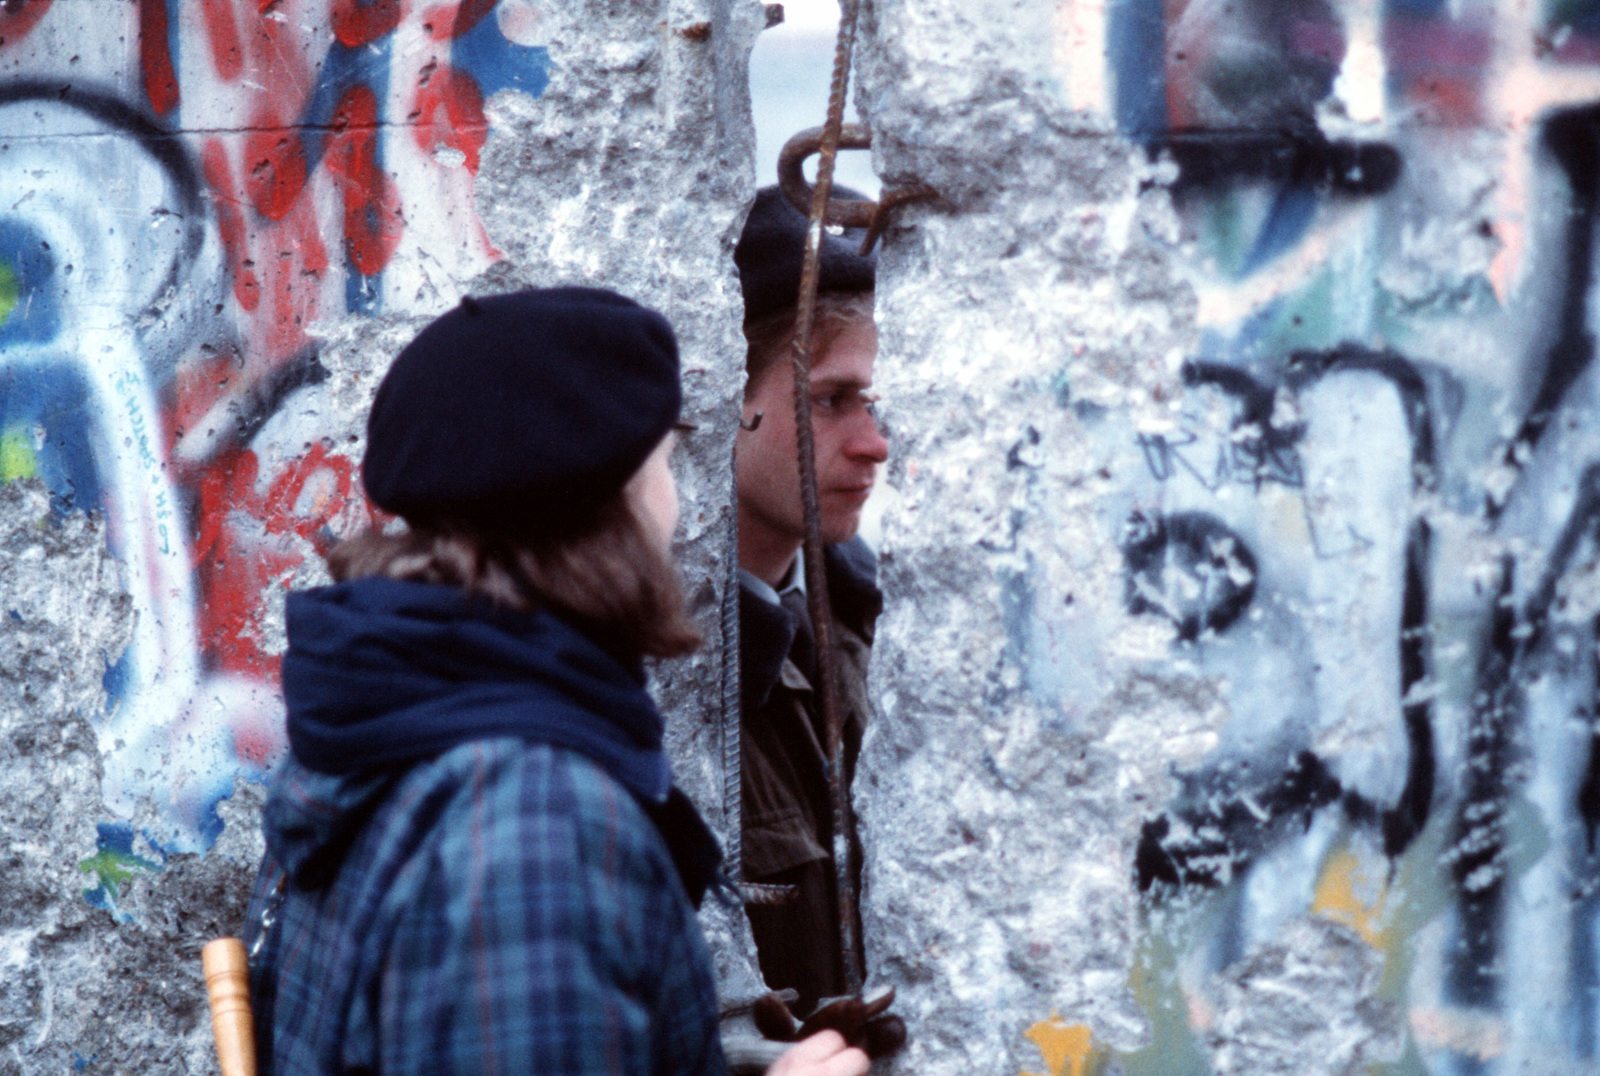 A West German girl speaks with an East German guard through an opening in the Berlin Wall